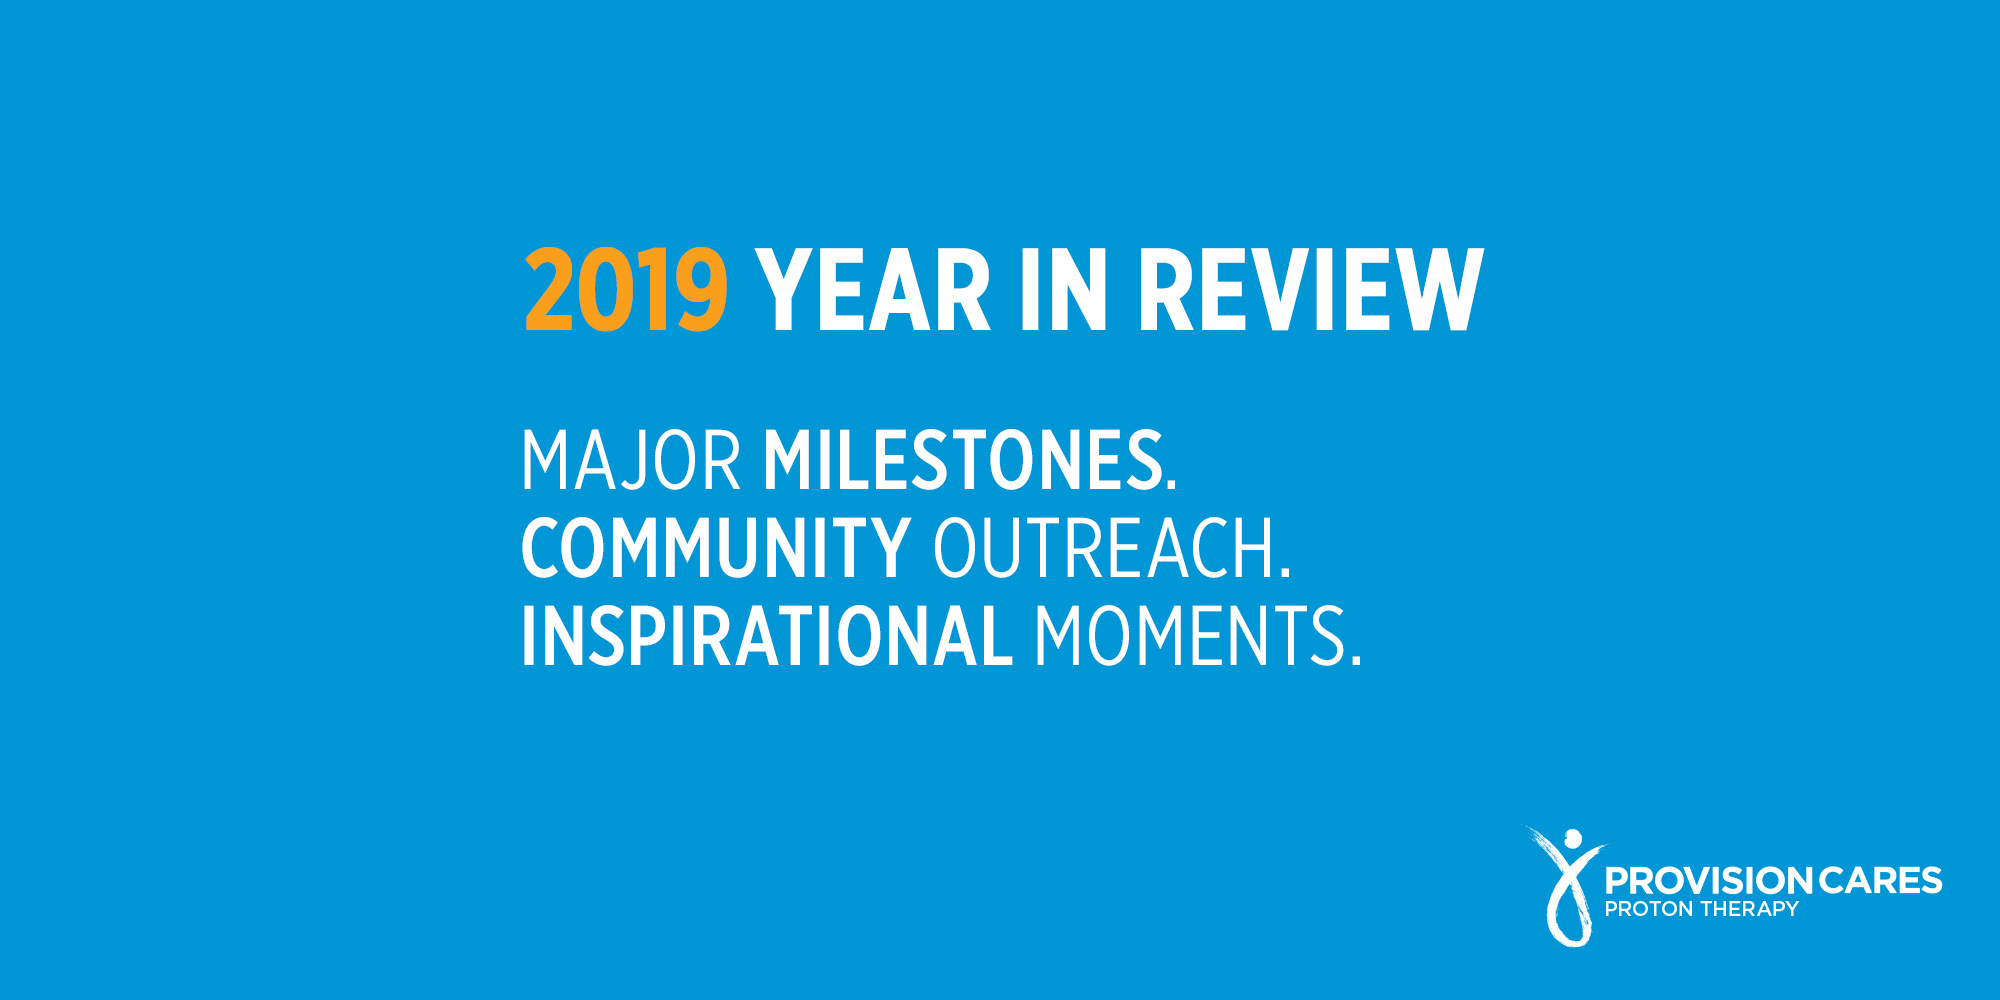 2019 Year in Review at Provision CARES Proton Therapy